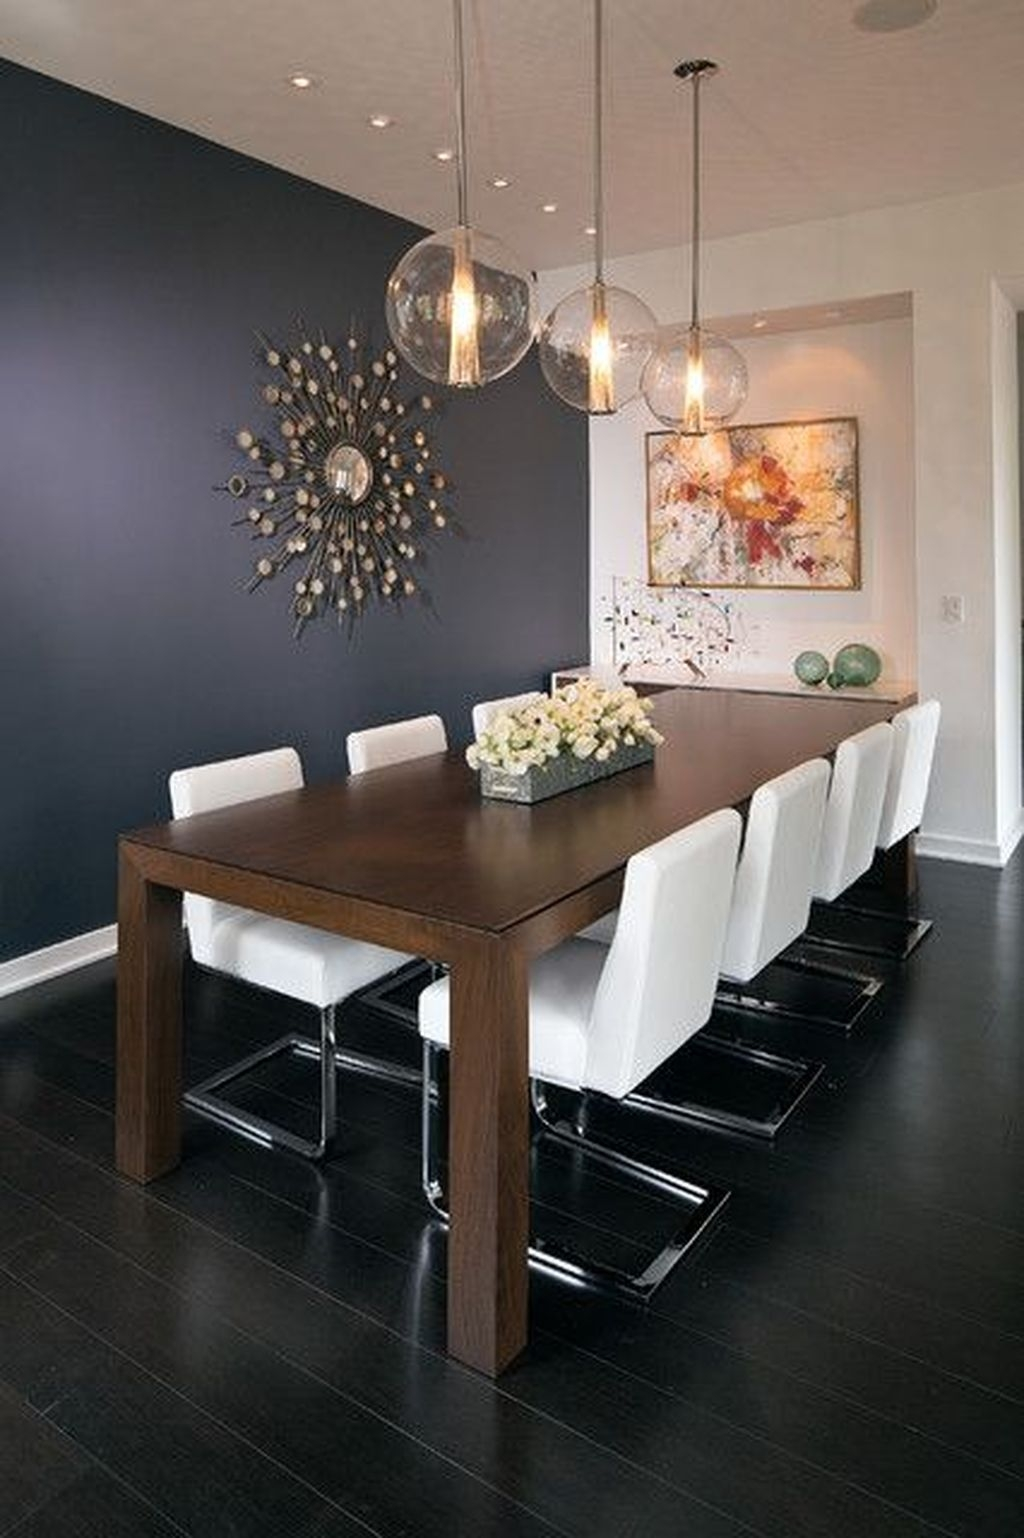 The Best Lighting Dining Room Design Ideas You Need To Try 41 Sweetyhomee,Decorating With Antiques In A Modern Home